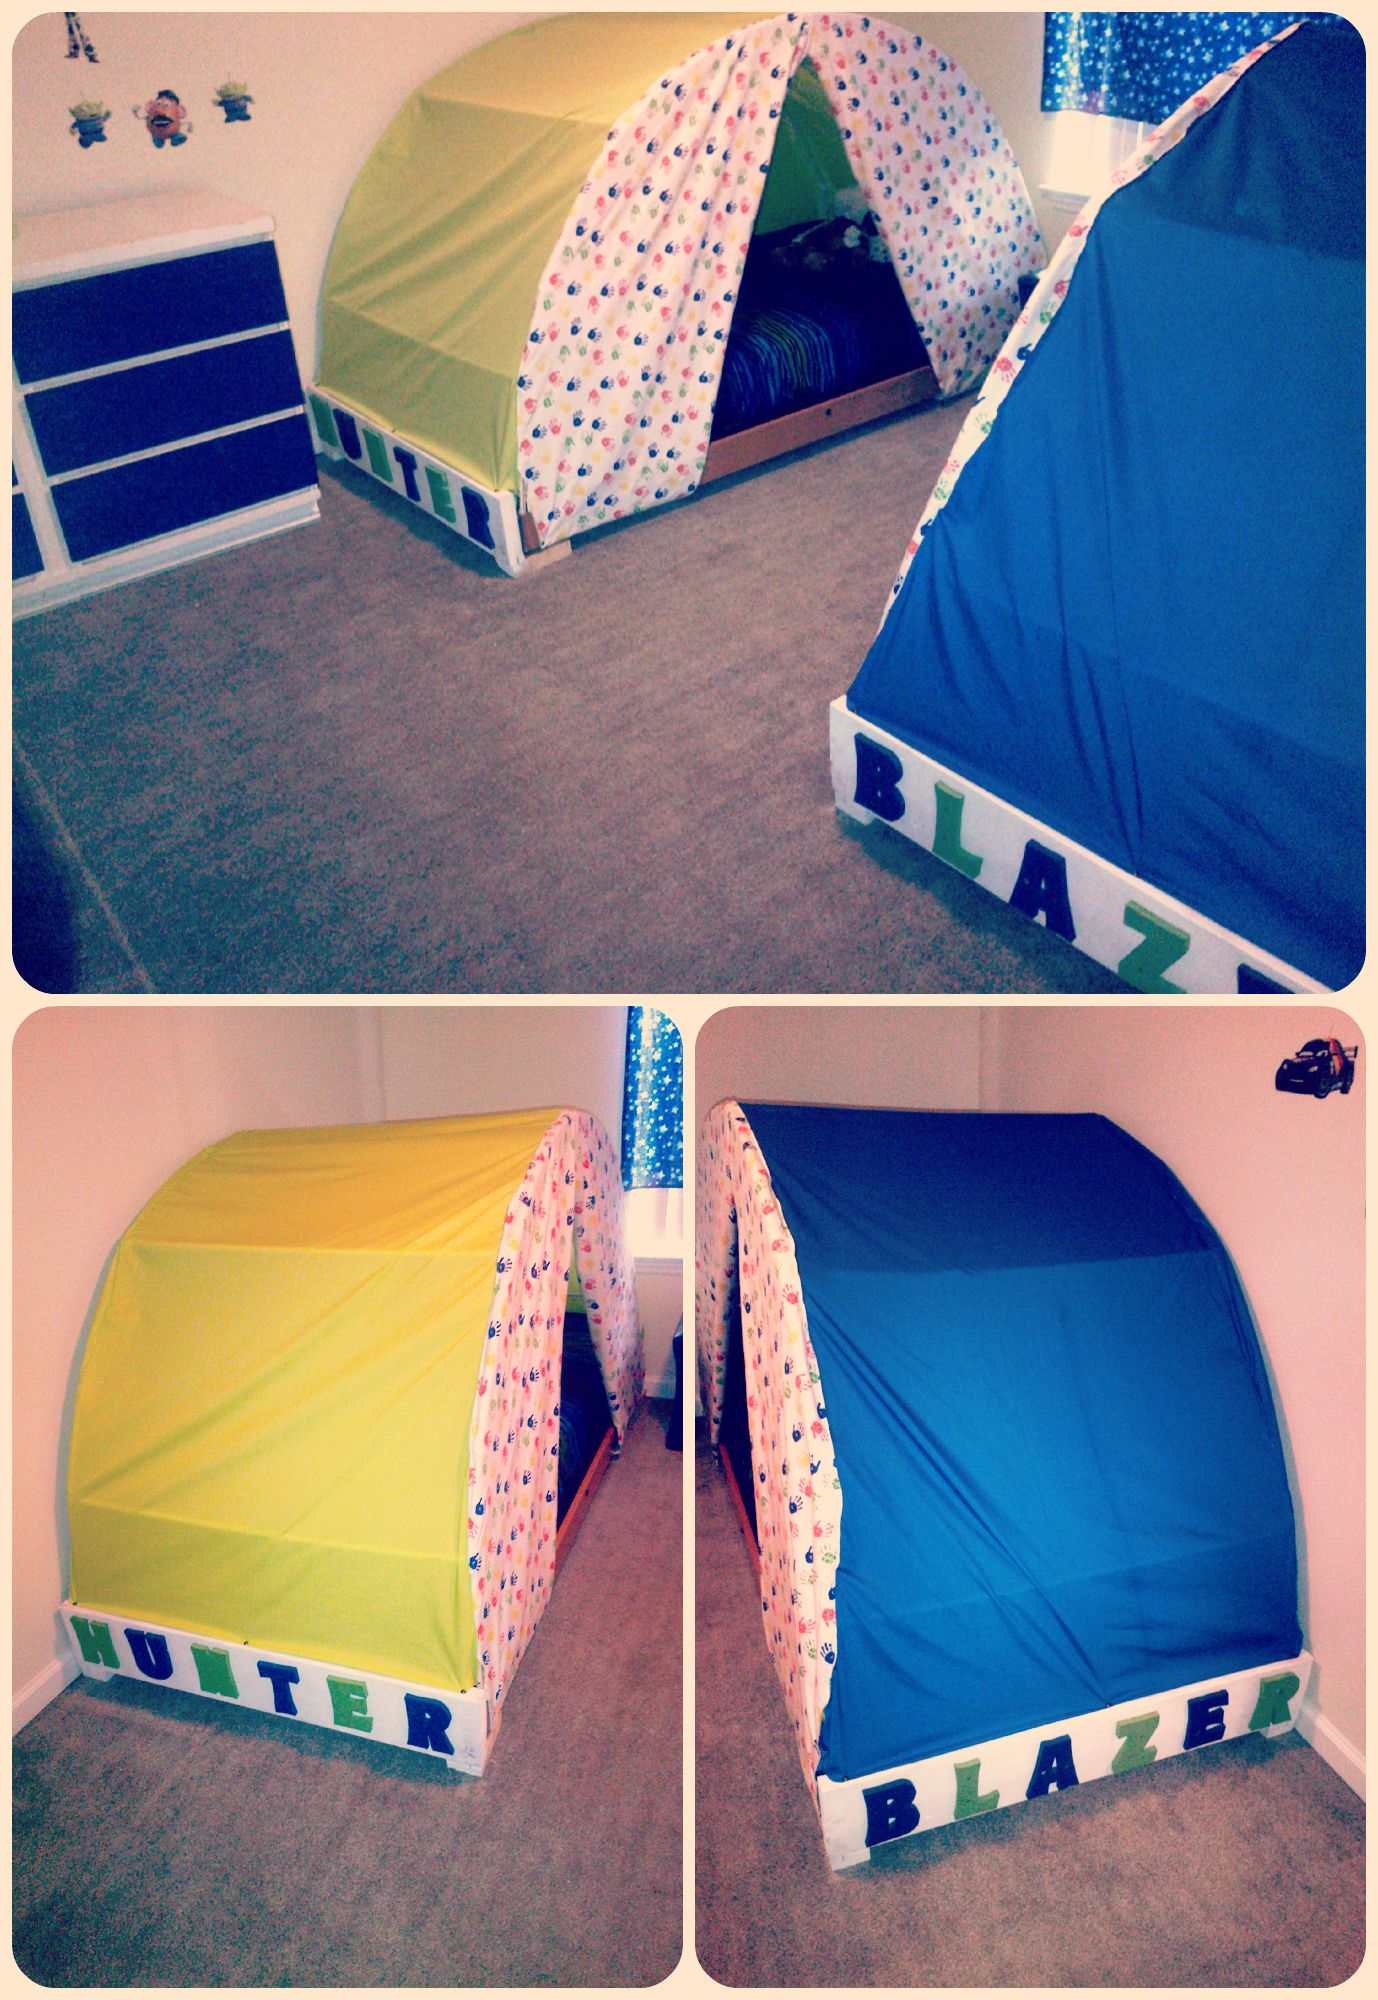 Tent Beds we made for the boys. ) & Tent Beds we made for the boys. :) | Moo Squish Squeak | Pinterest ...